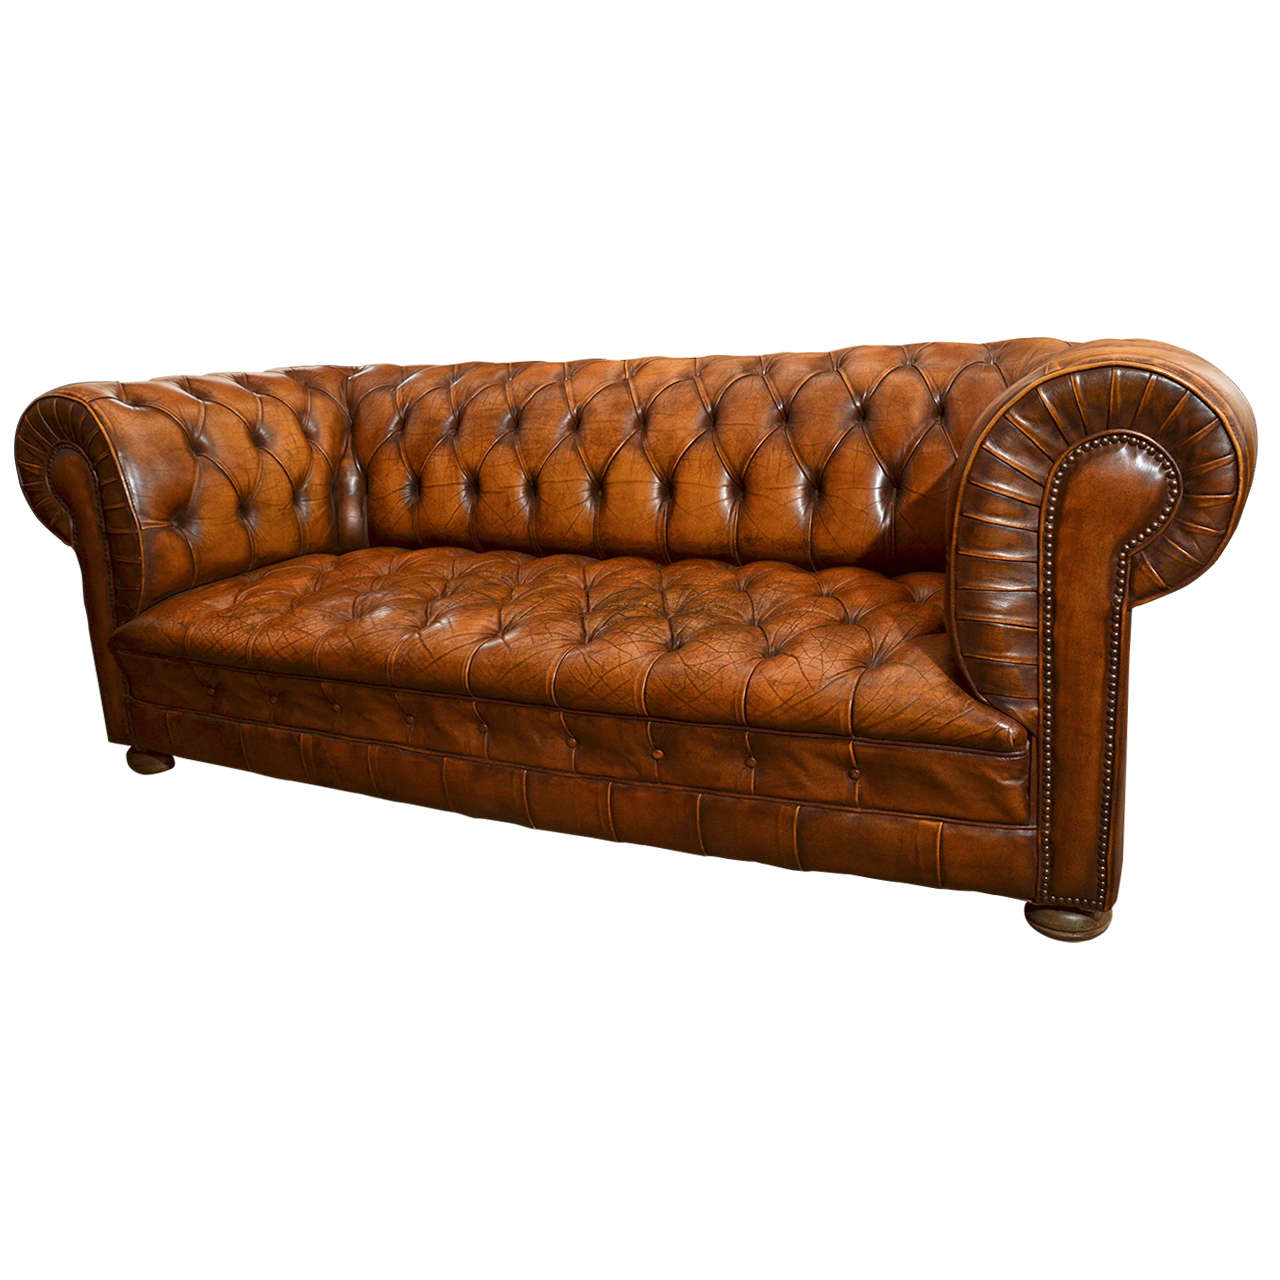 1970s French Leather Chesterfield Sofa